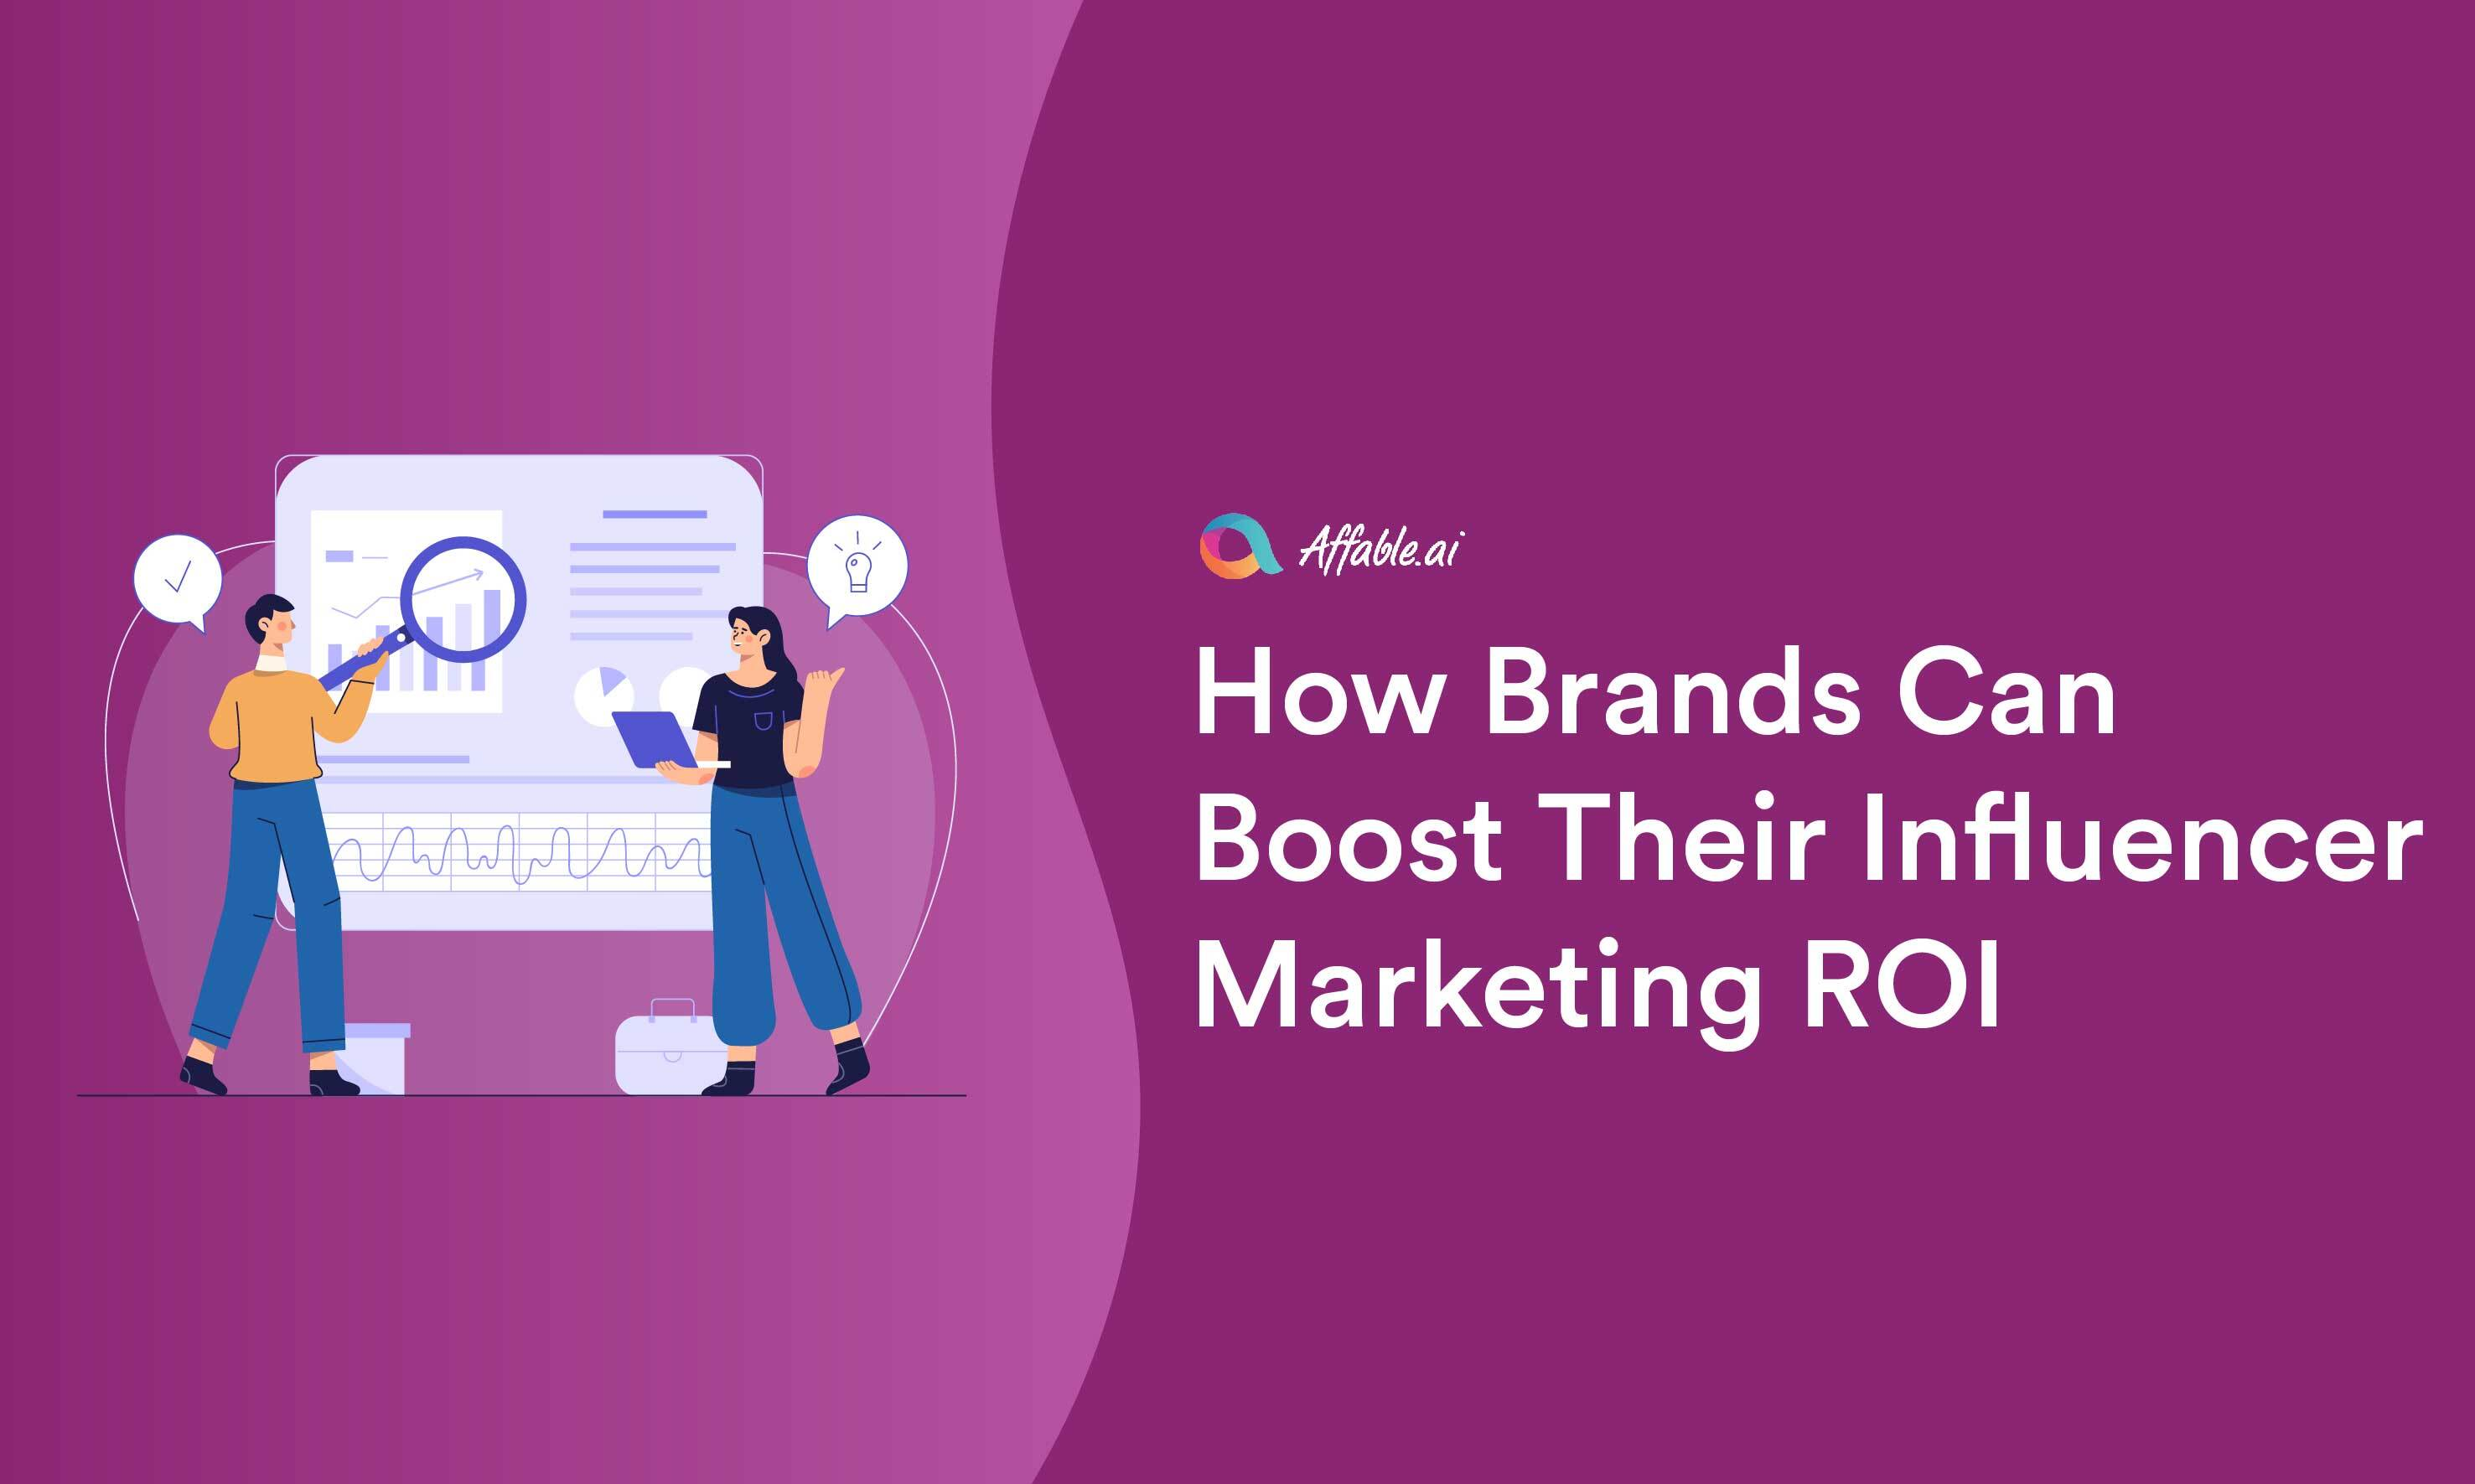 How brands can boost their influencer marketing ROI